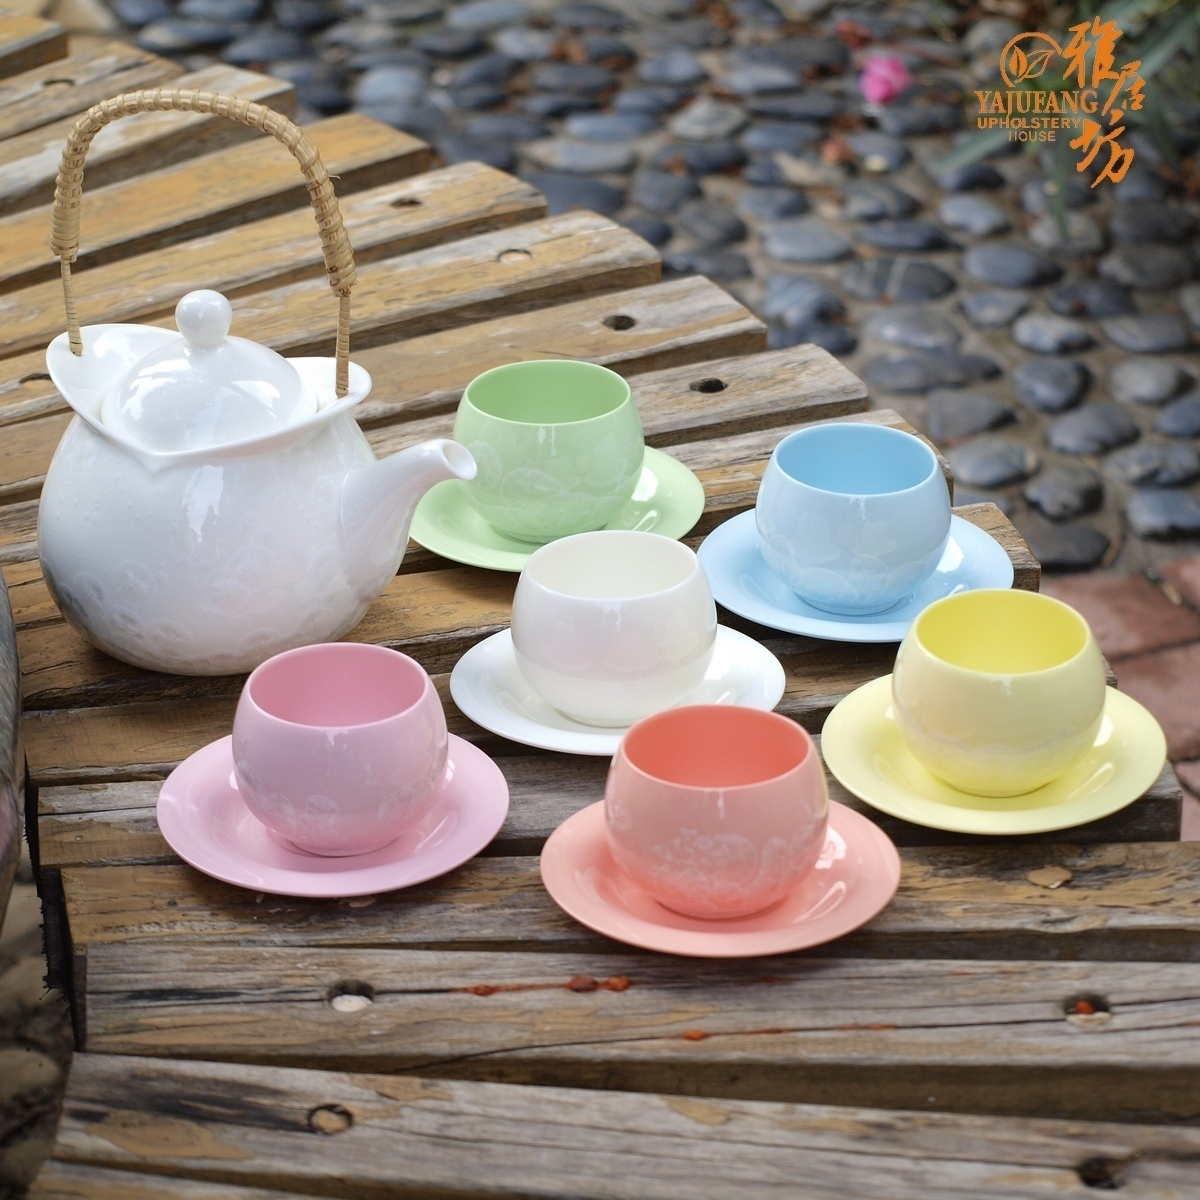 modernrainbowdesignflowerycolorfulceramicteaset highqualitycreativeweddingbirthdaymothersday - modern rainbow design flowery colorful ceramic tea set high qualitycreative wedding birthday mother's day gift